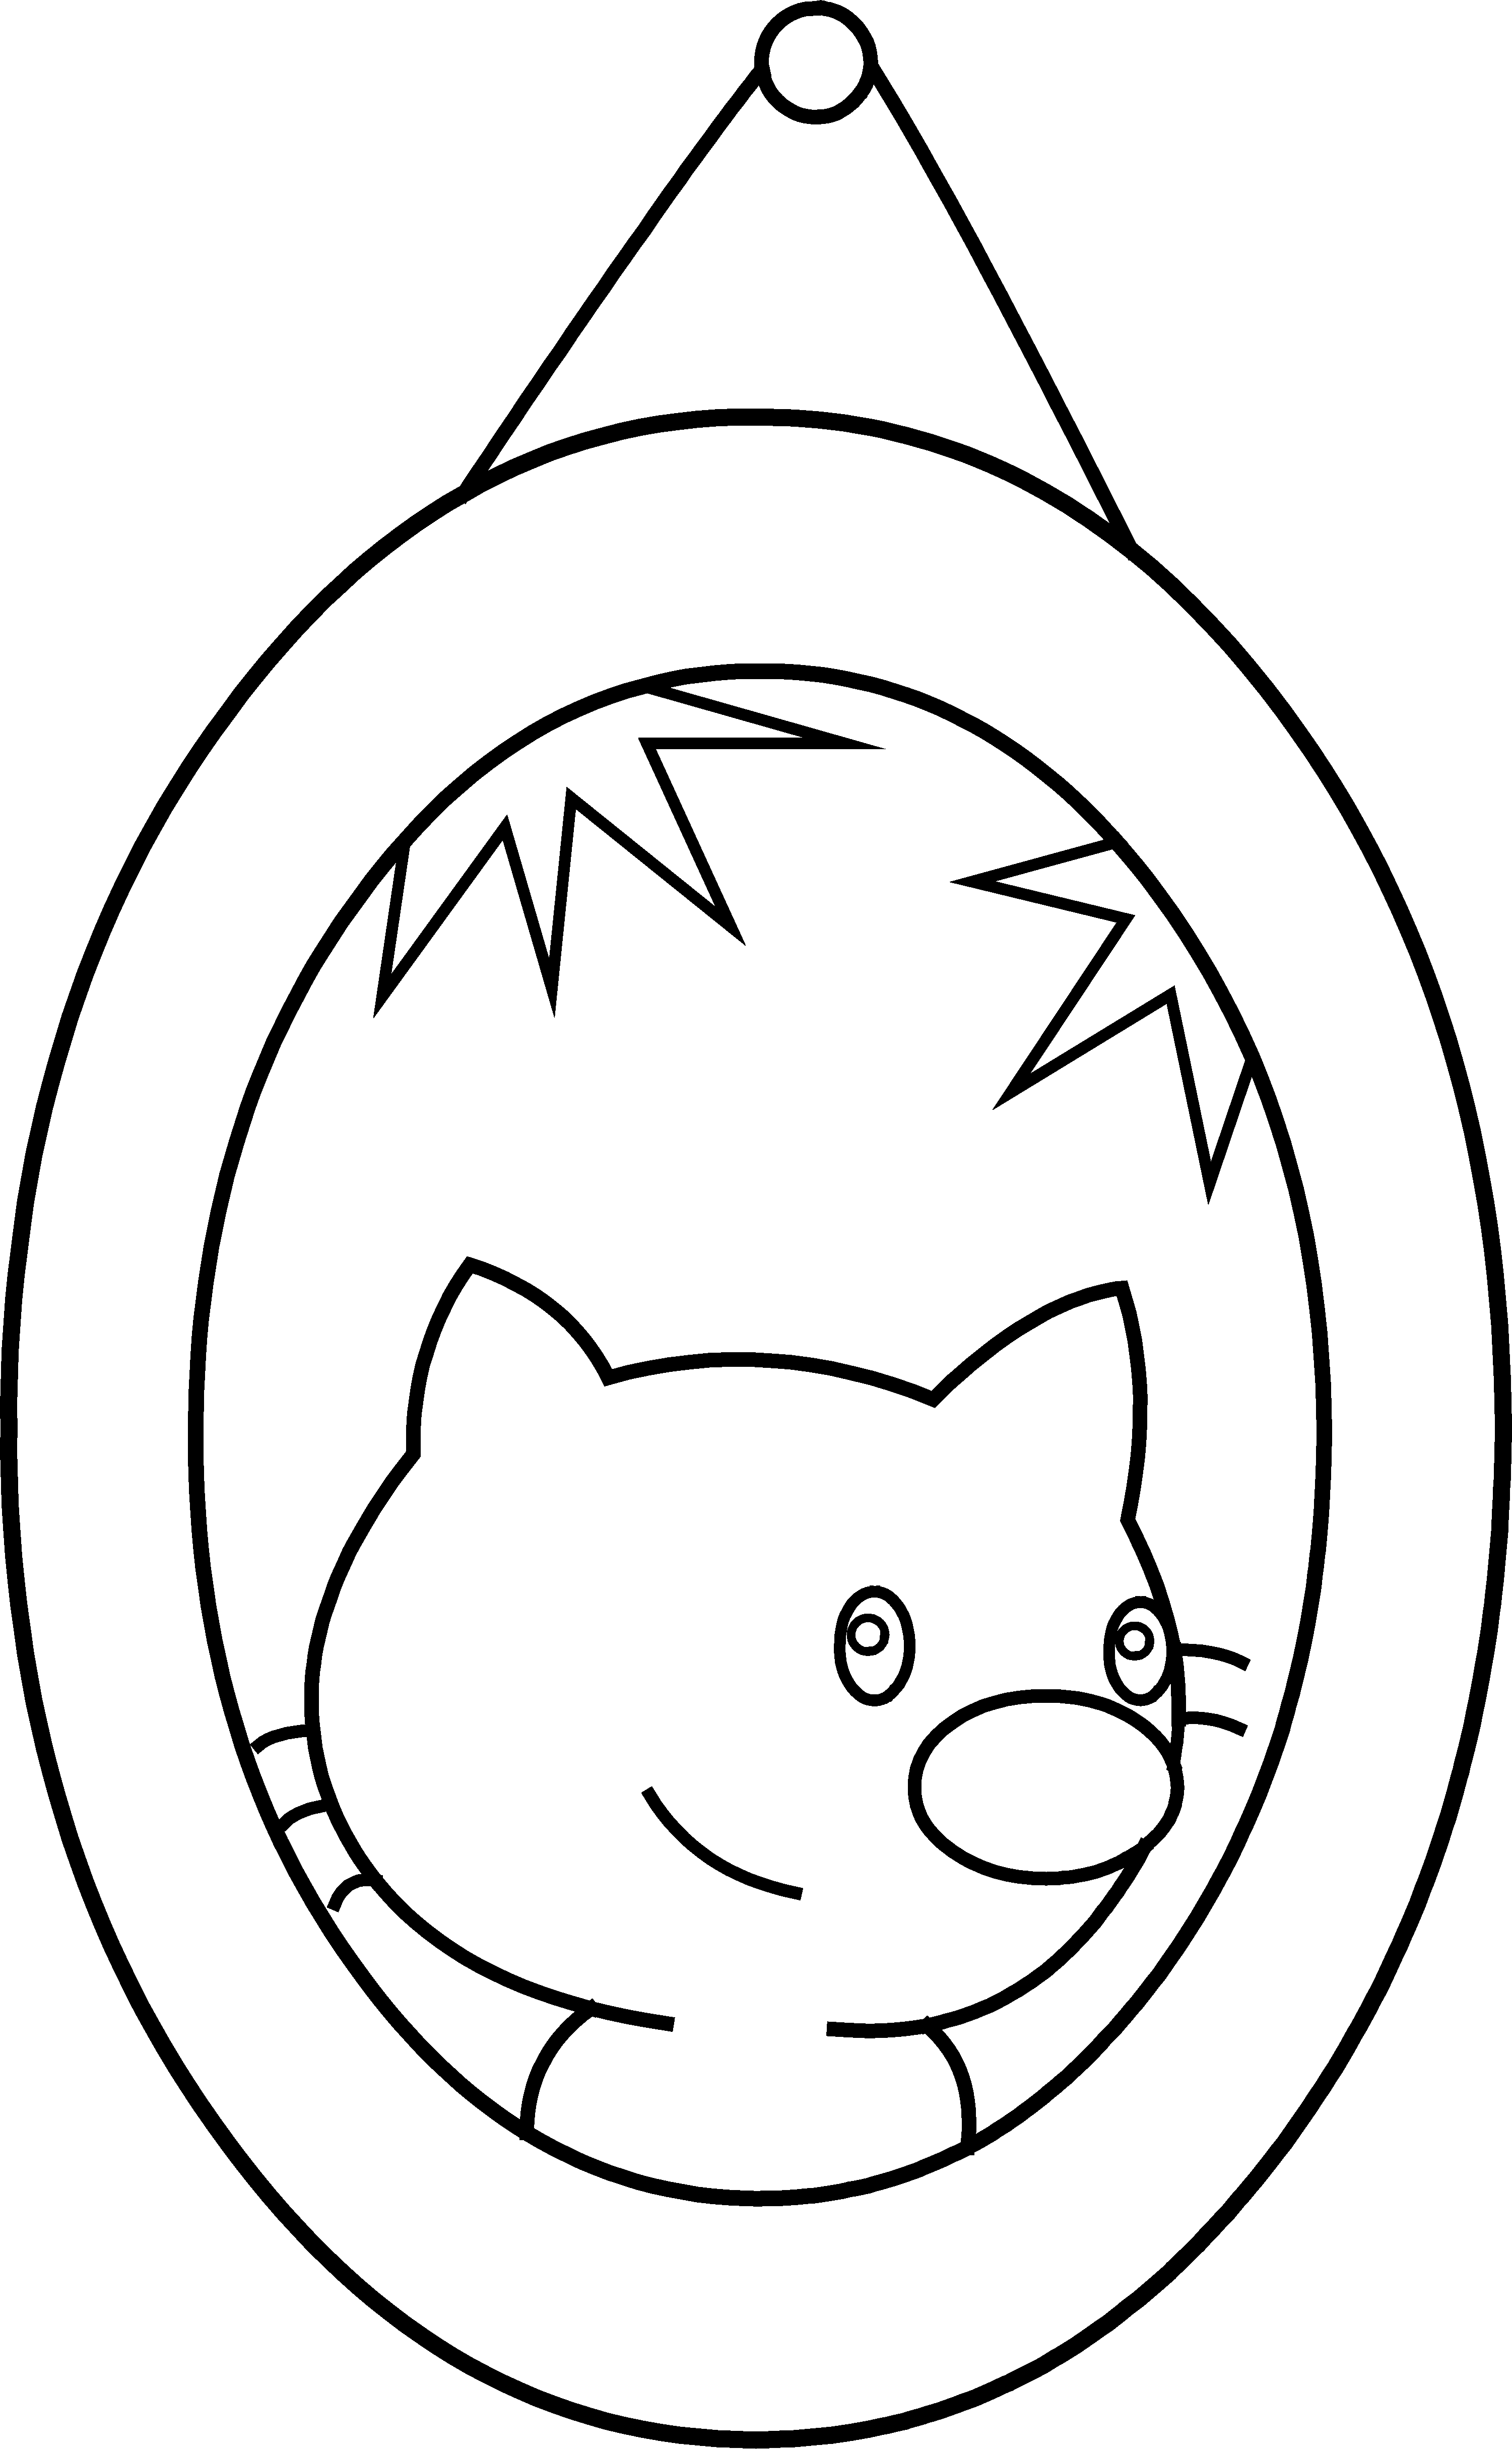 Cat clipart coloring page picture free stock Cute Cat Portrait Coloring Page - Free Clip Art picture free stock